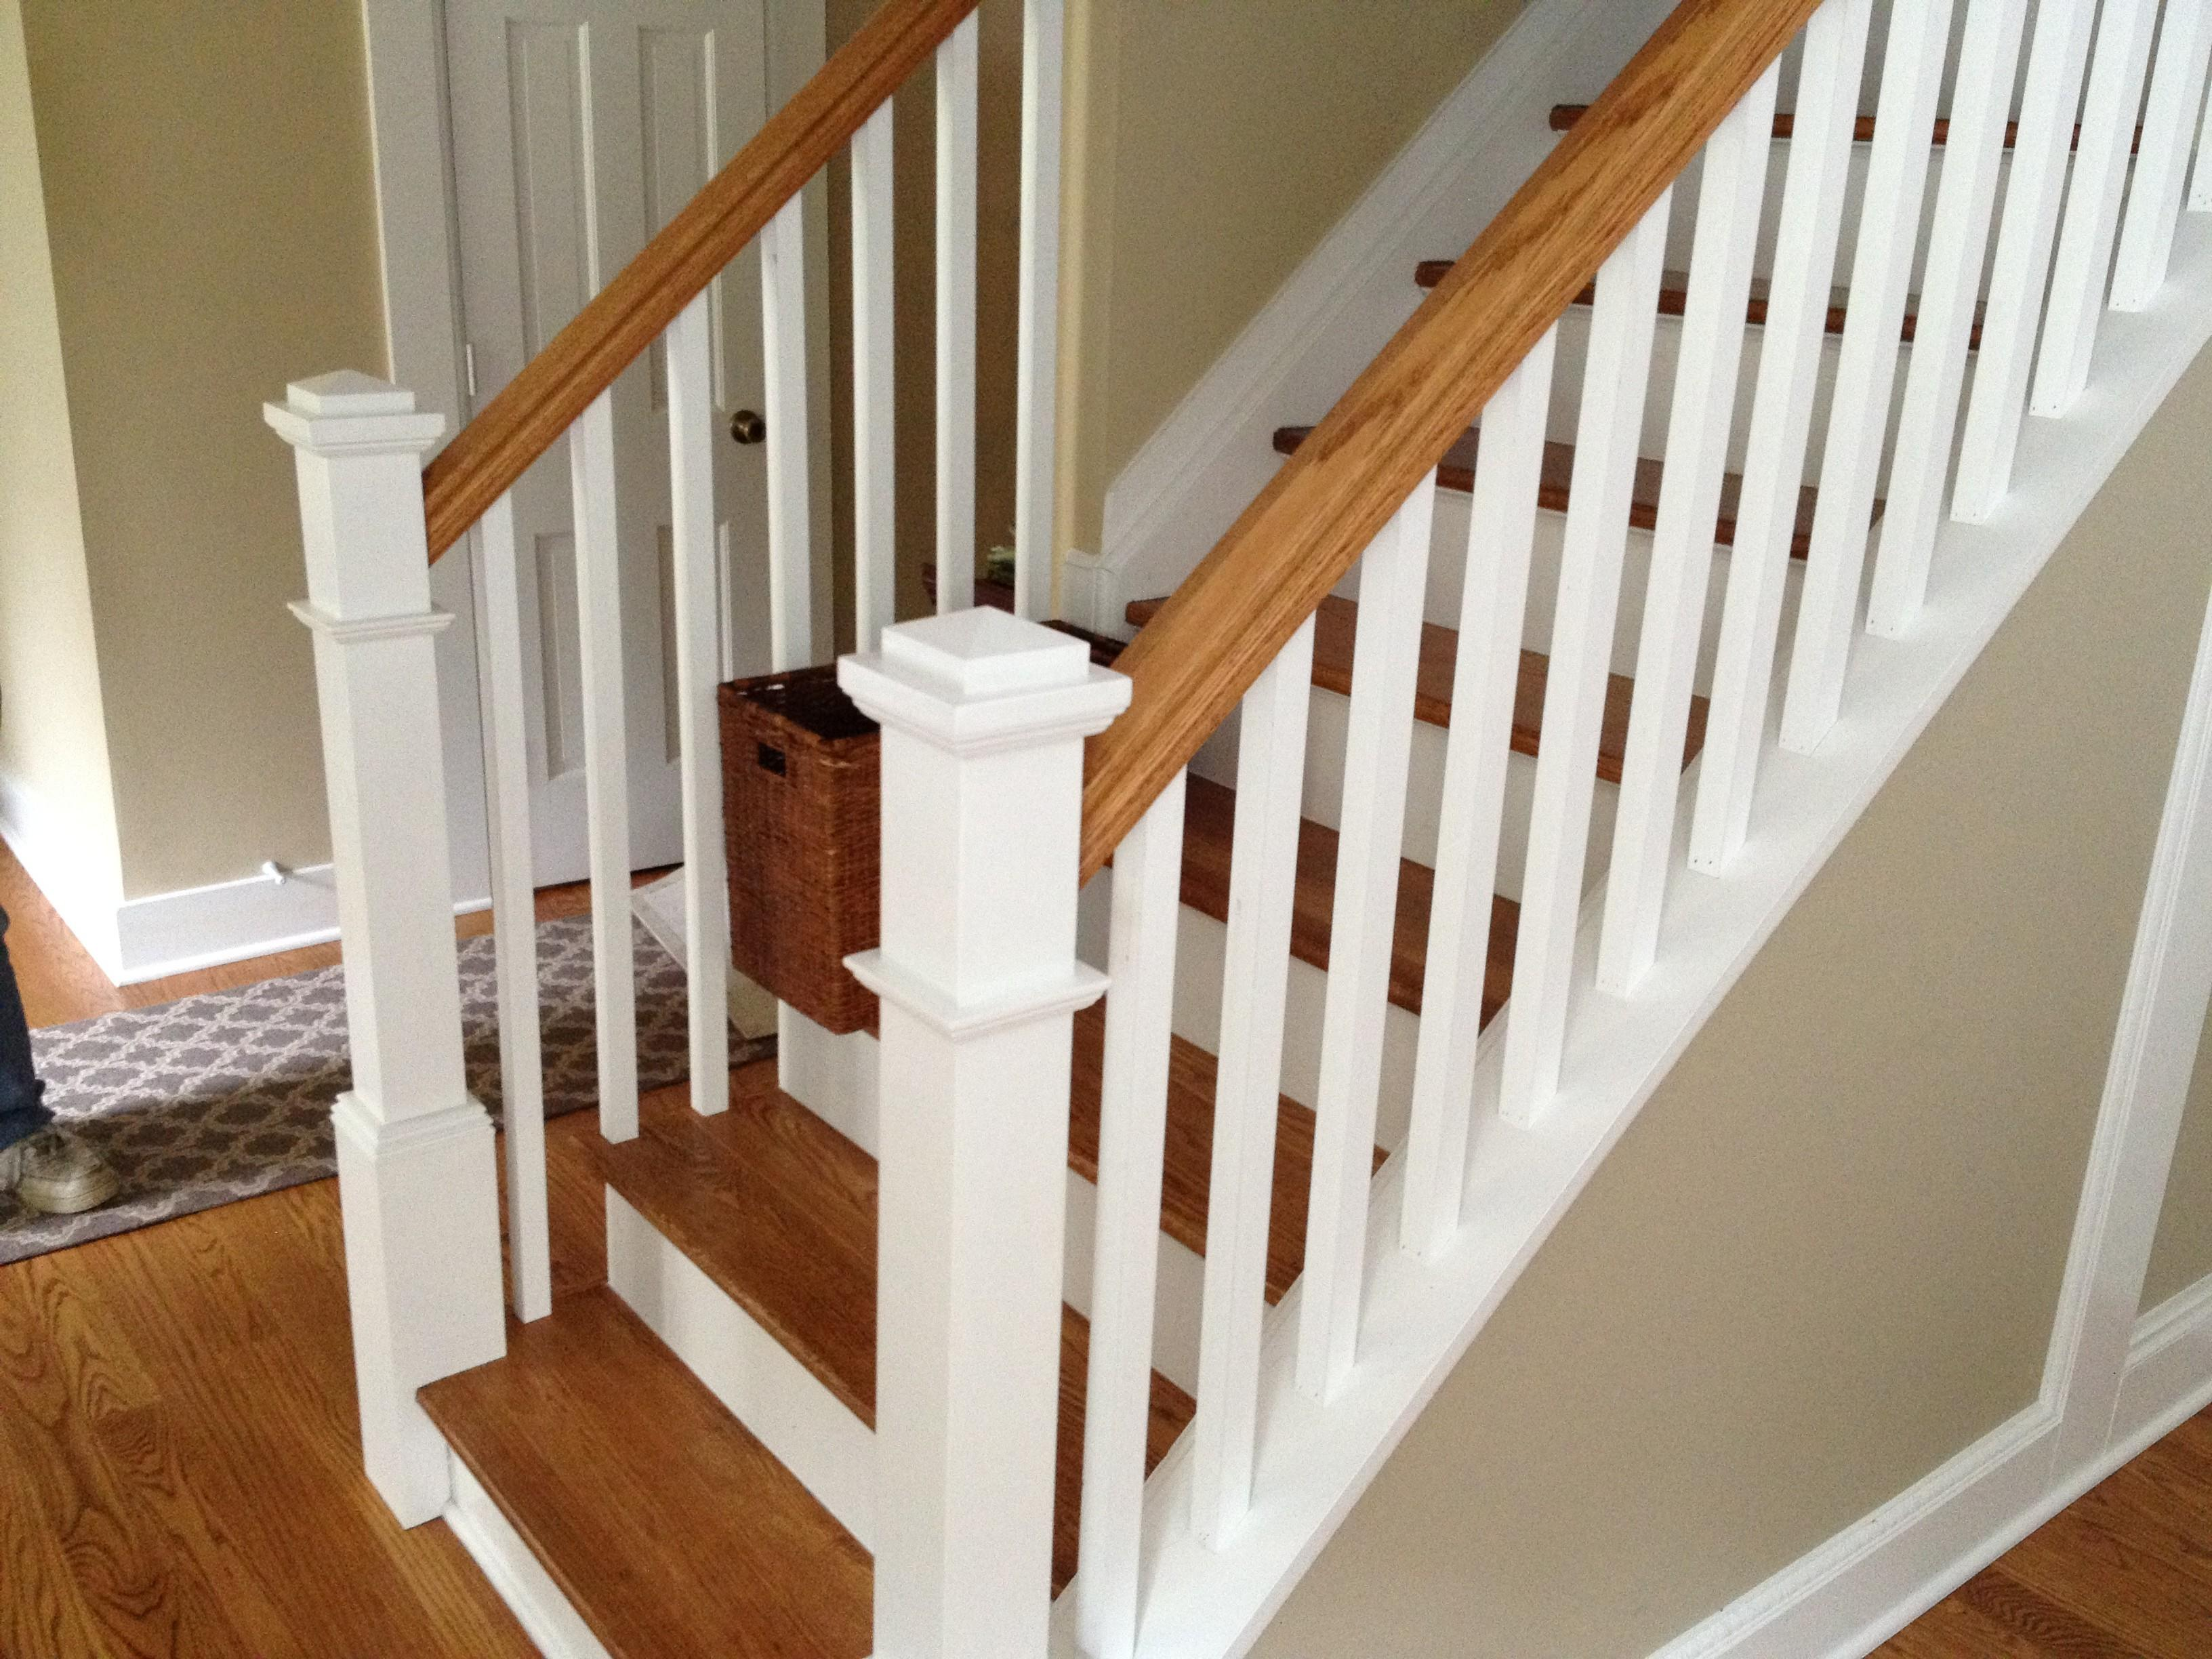 Decor White Baseboard Design Ideas Stair Rails Plus